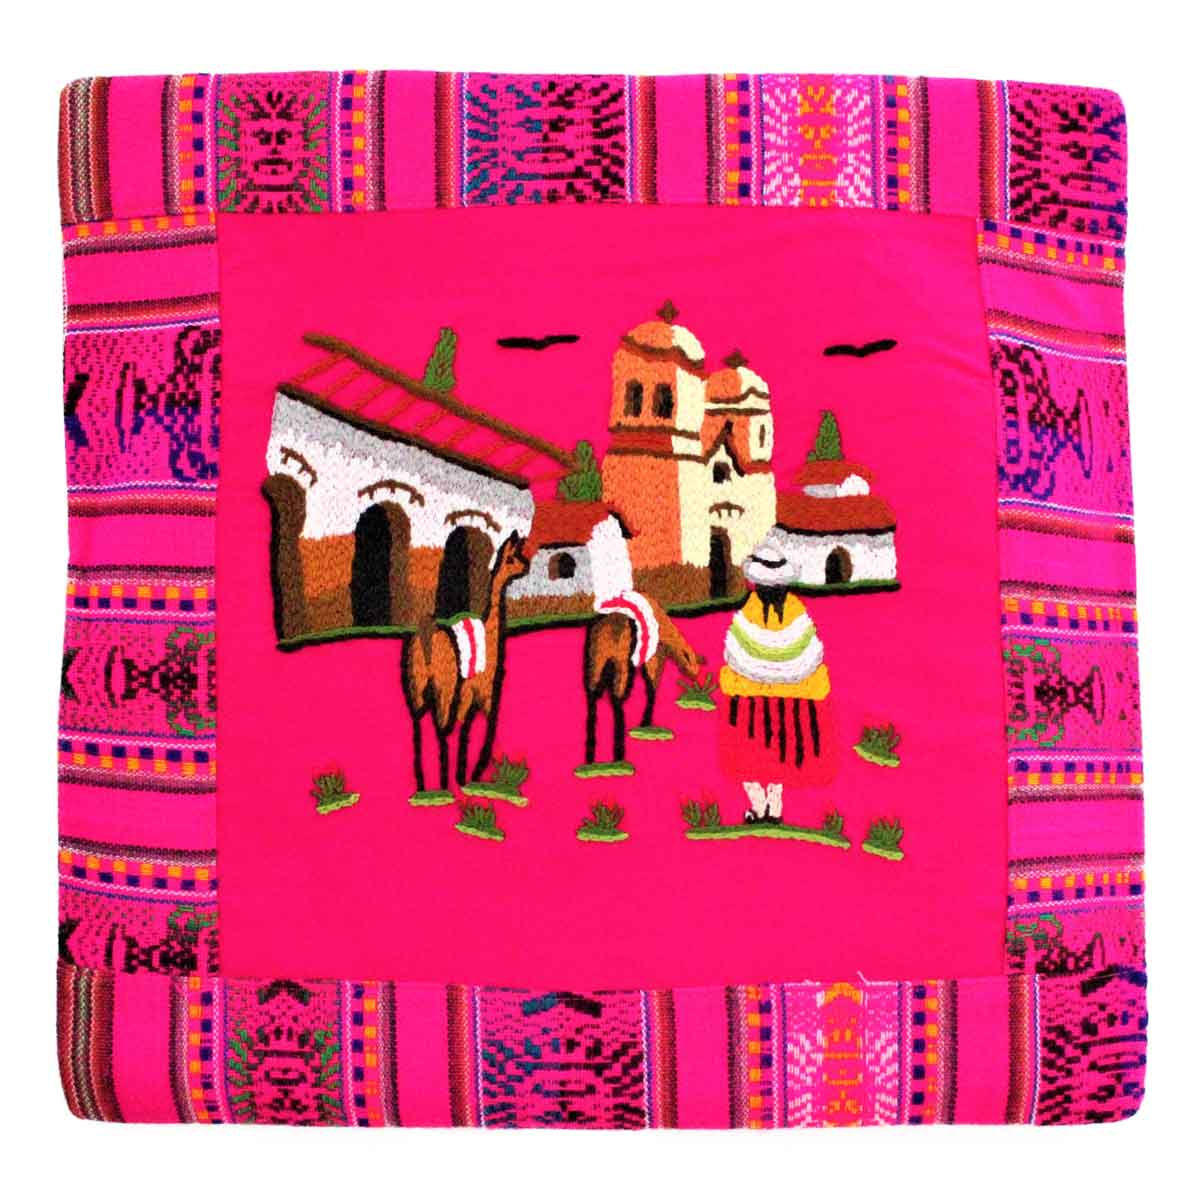 Inka-Products-Housse Coussin Péruvienne-Fuchsia Pueblo Andino